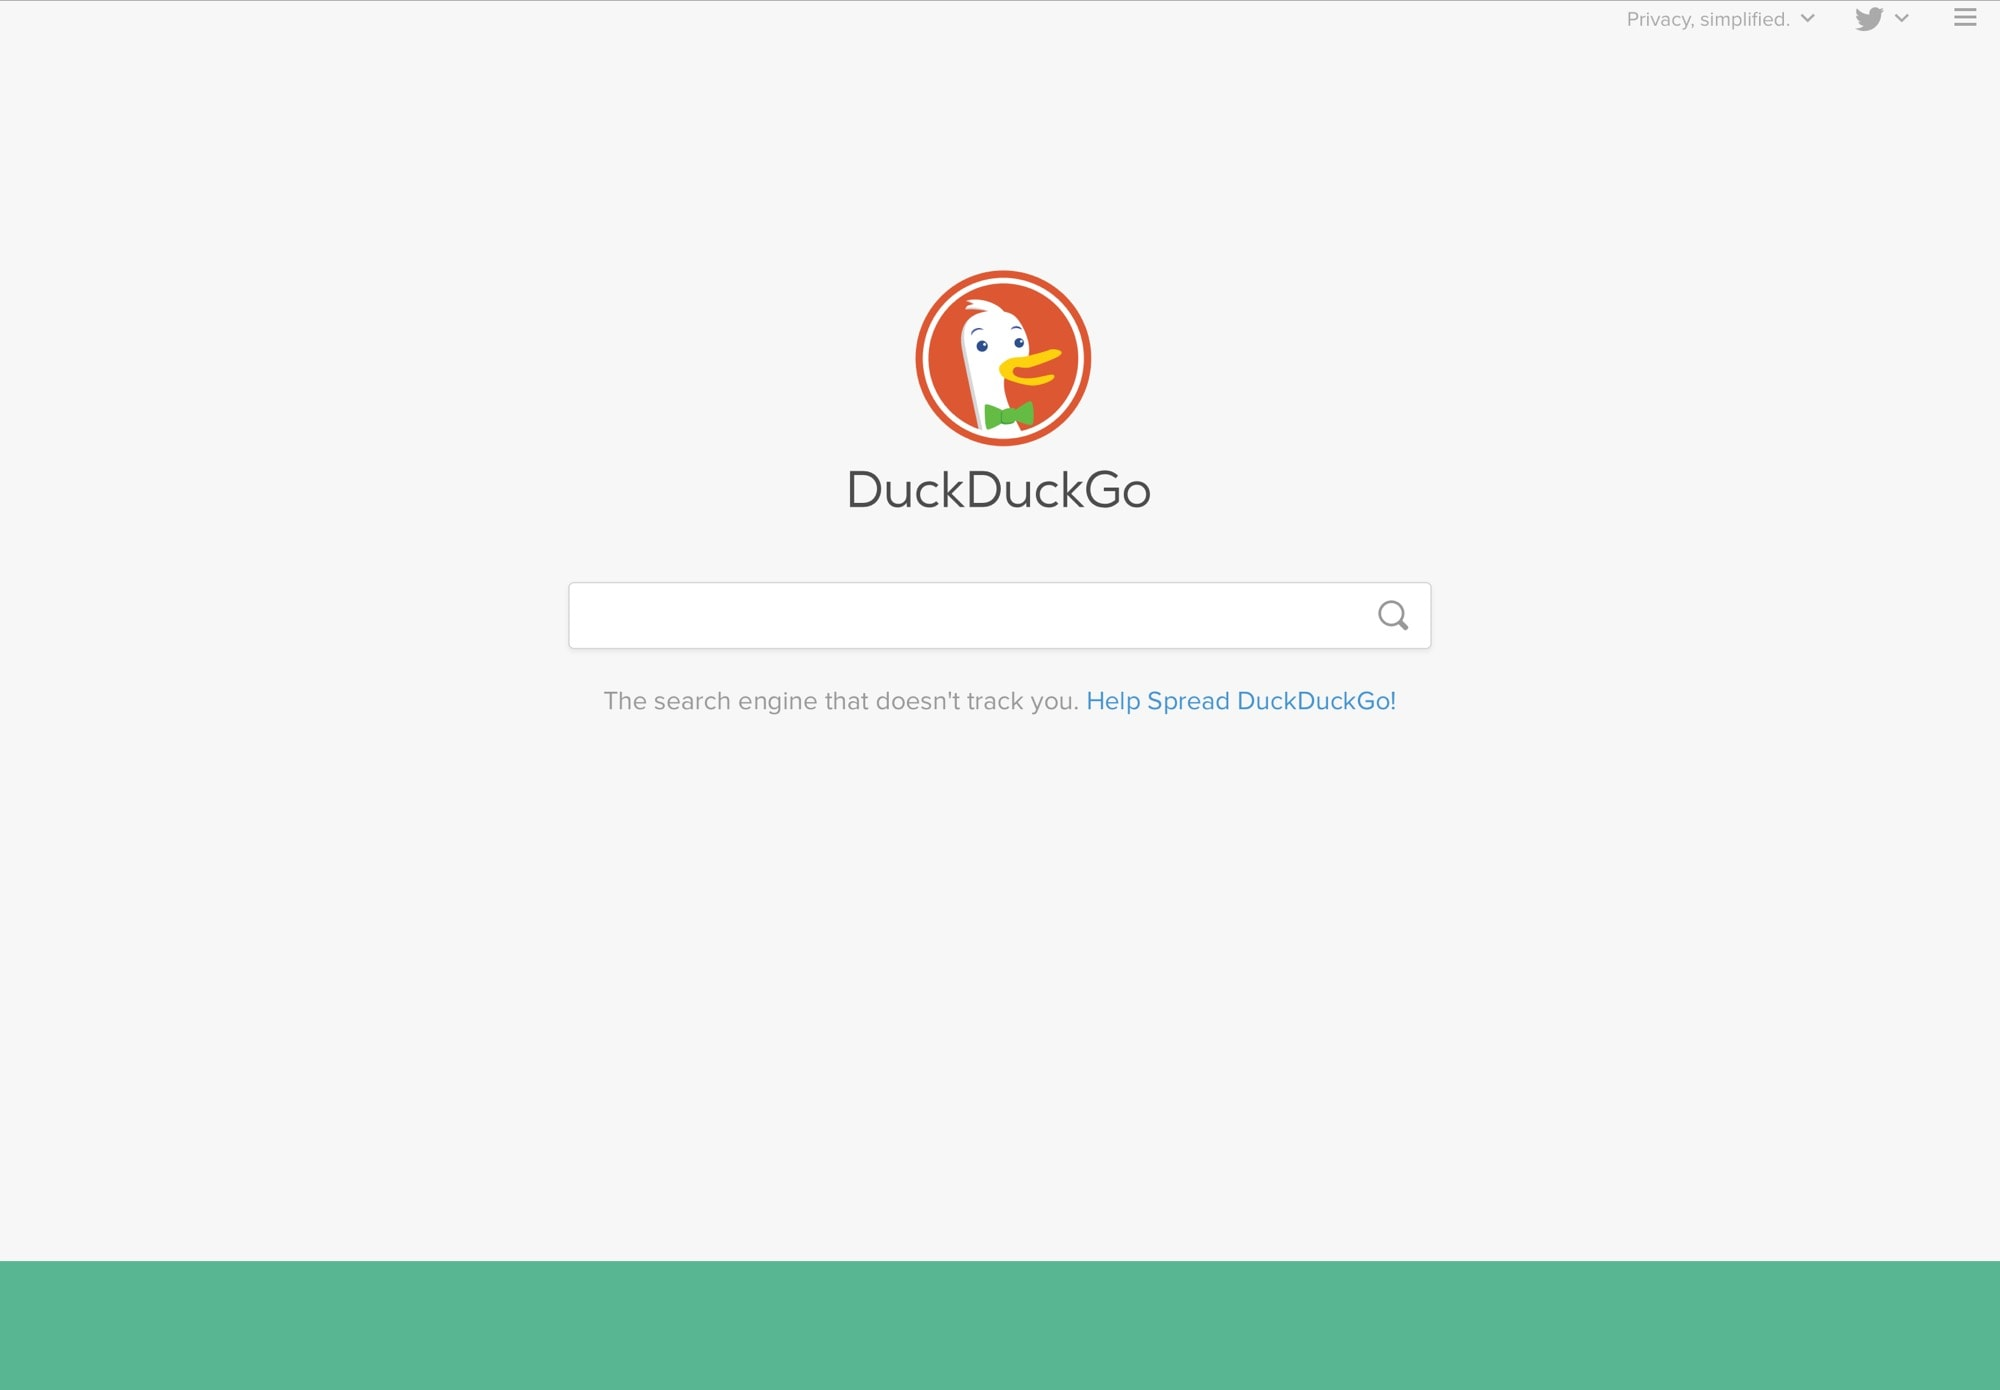 The DuckDuckGo interface looks nice and clean.